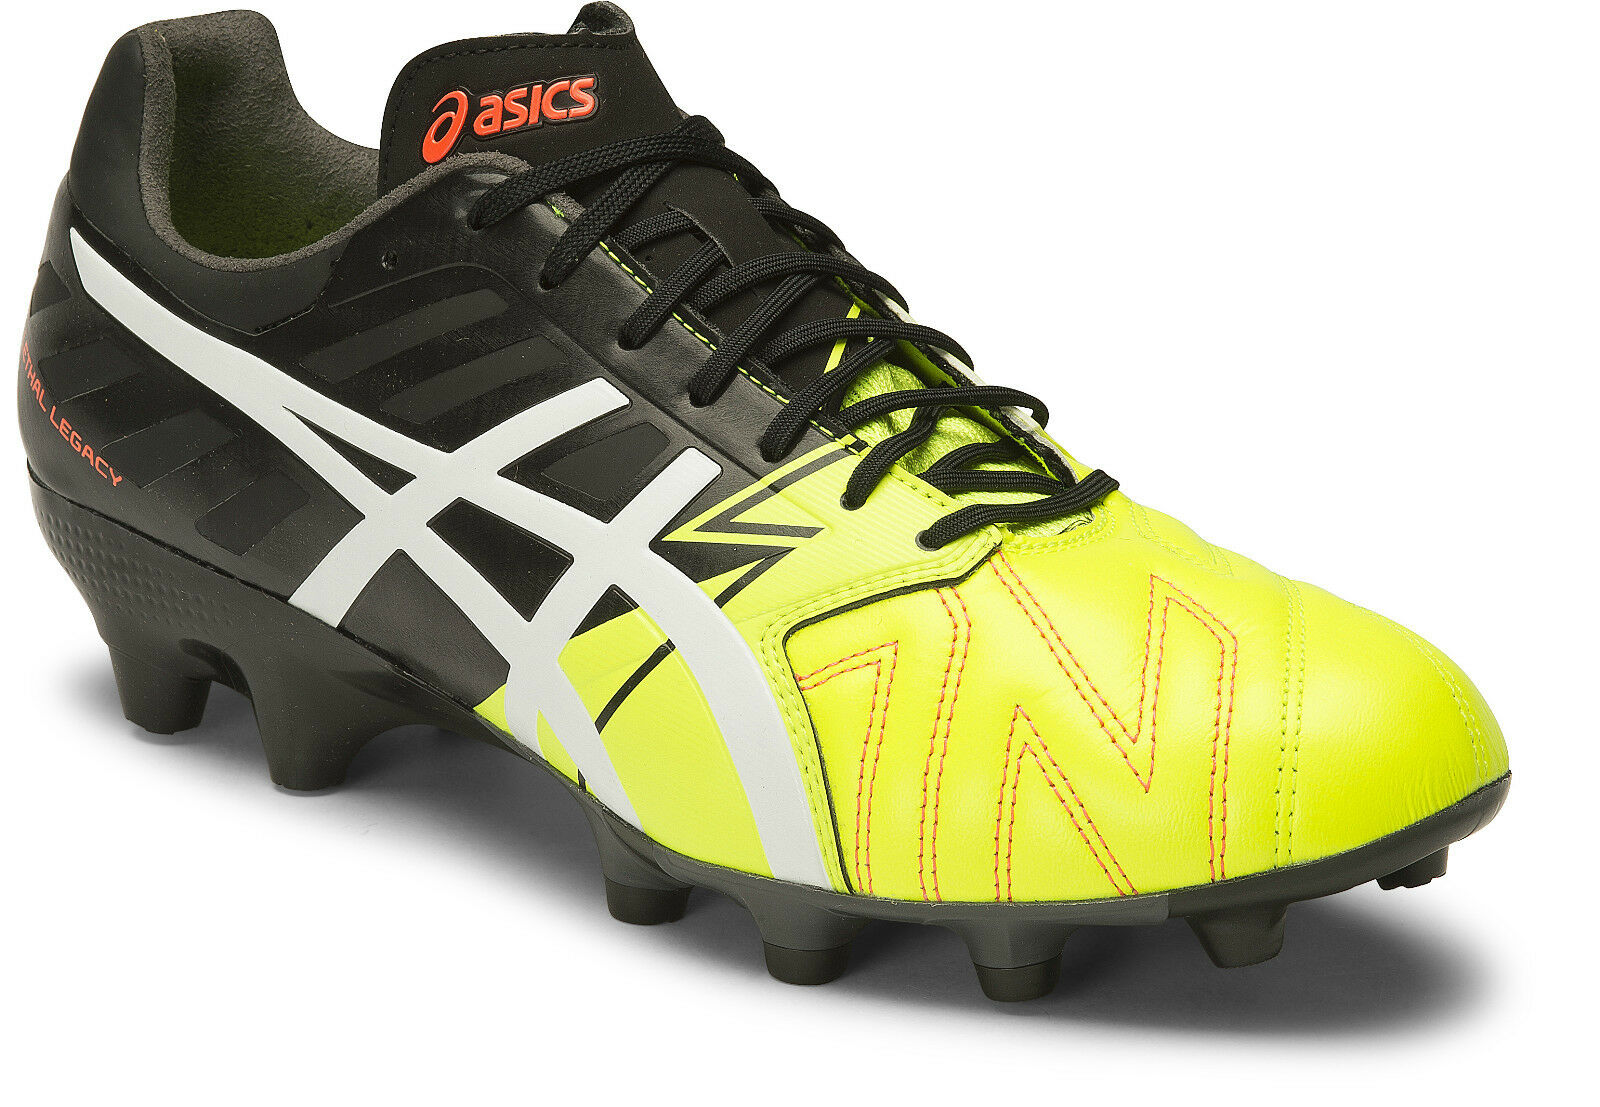 Asics Lethal Legacy IT Uomo Football Shoes (0701) + Free Aus Delivery